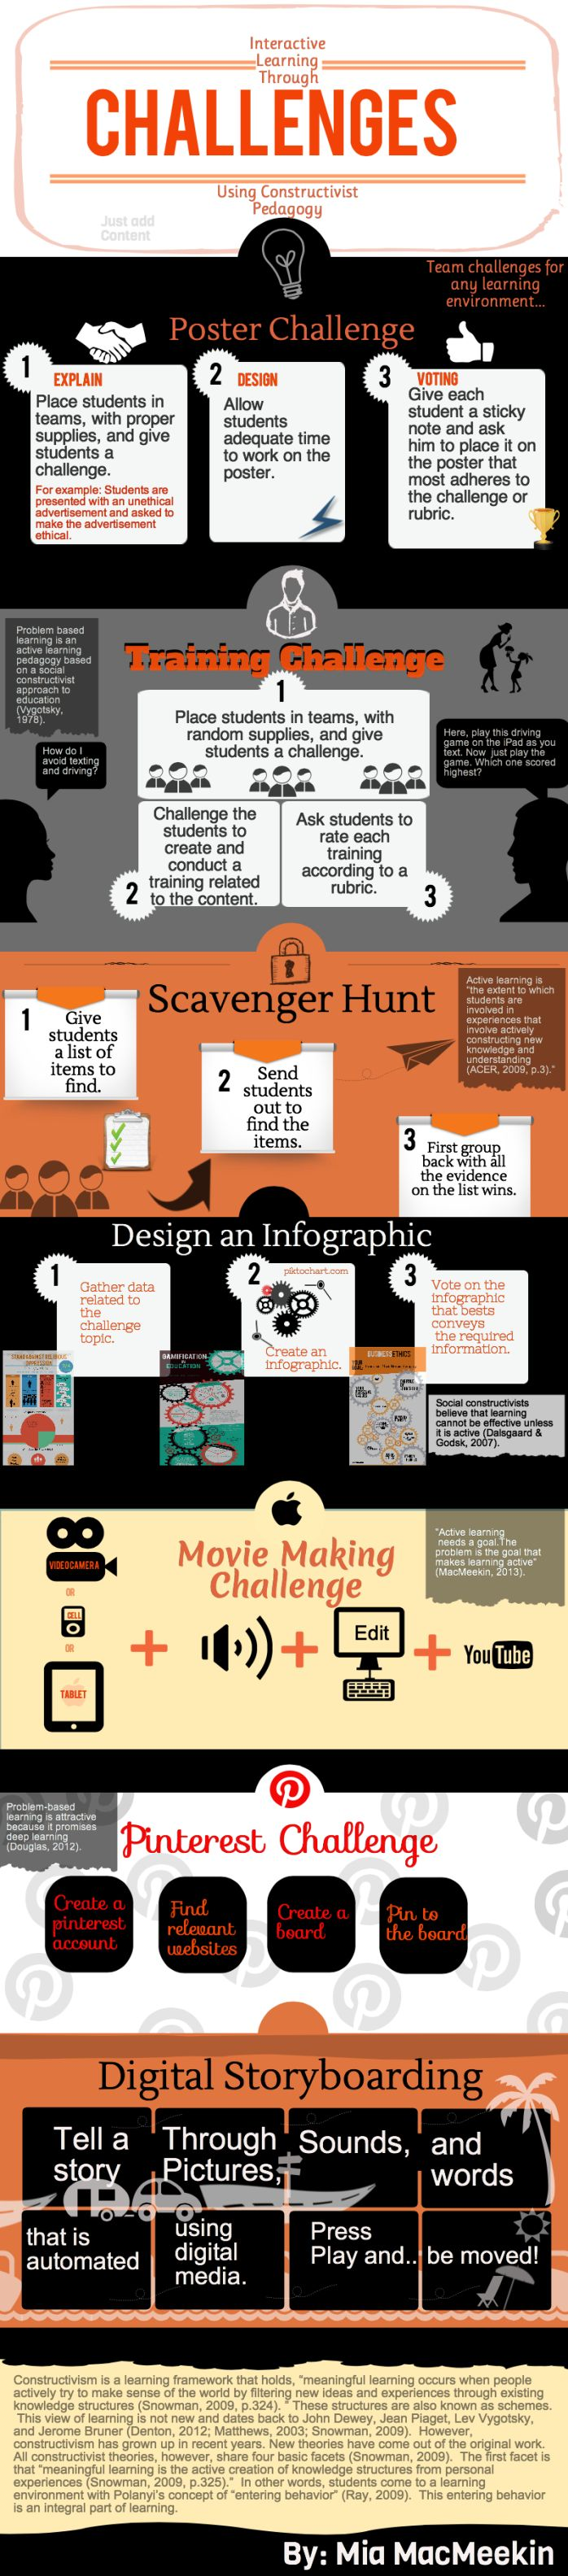 App Challenges Infographics https://anethicalisland.wordpress.com/2013/03/23/challenge-ideas/